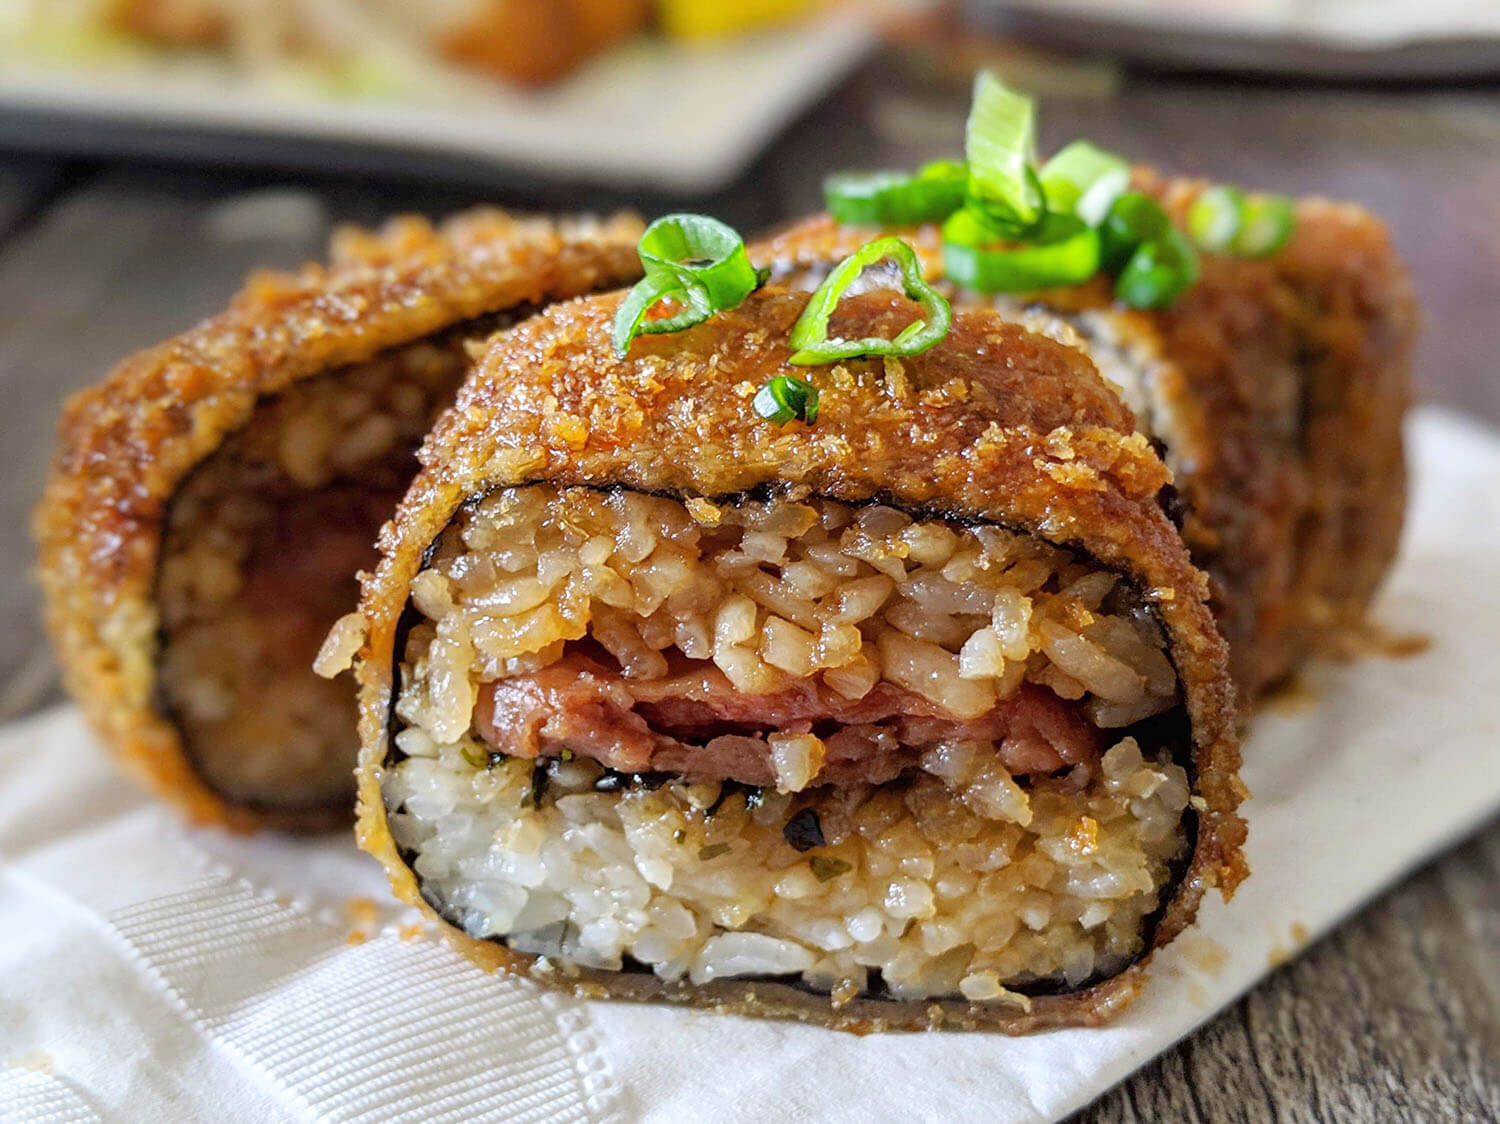 Deep Fried Spam Musubi Da Kitchen Kihei Seafood Fish Maui Hawaii Food Travel